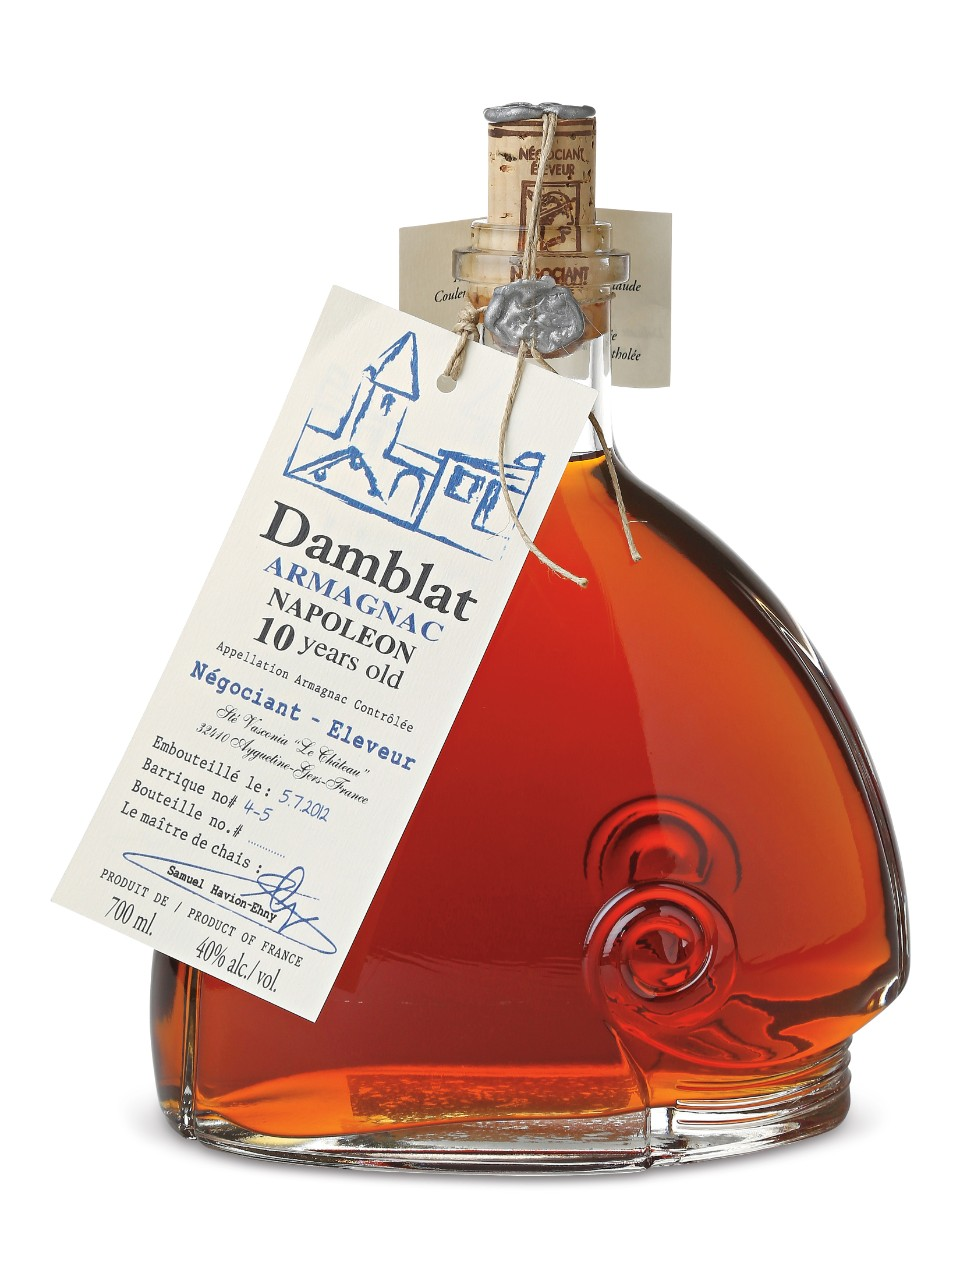 Image for Damblat Armagnac 10 Year Old Napoleon from LCBO